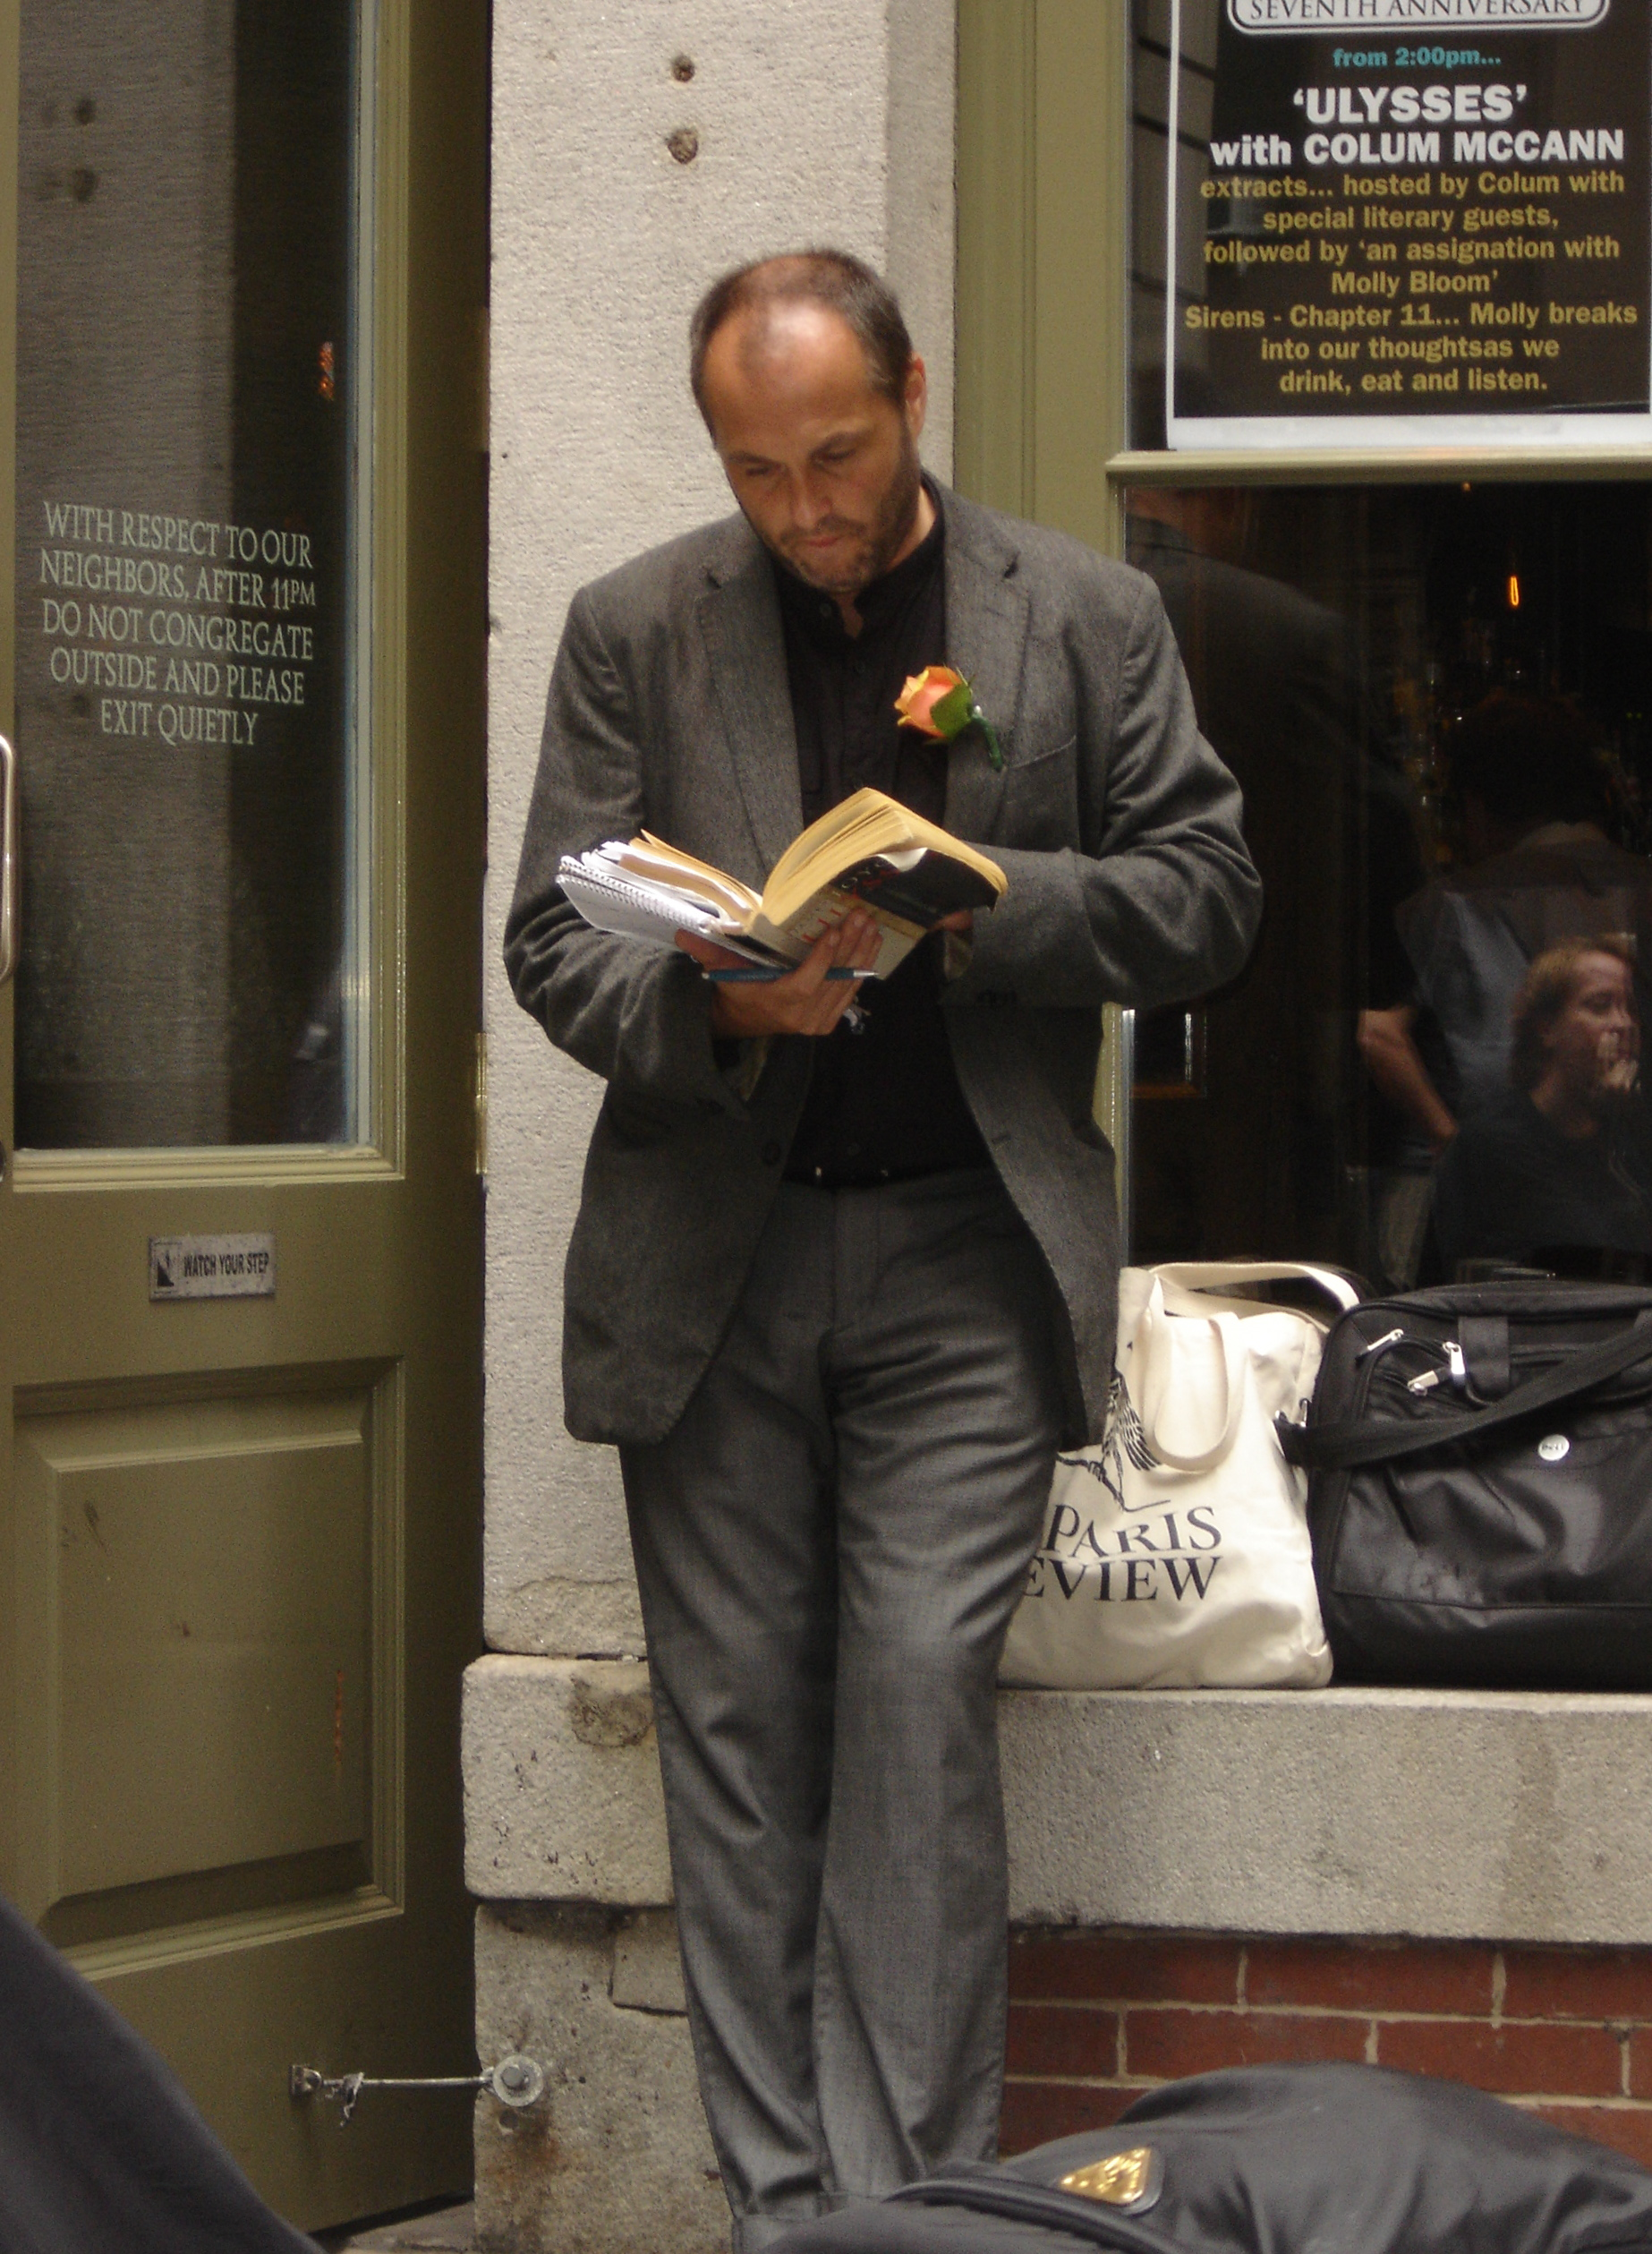 Colum McCann by John King